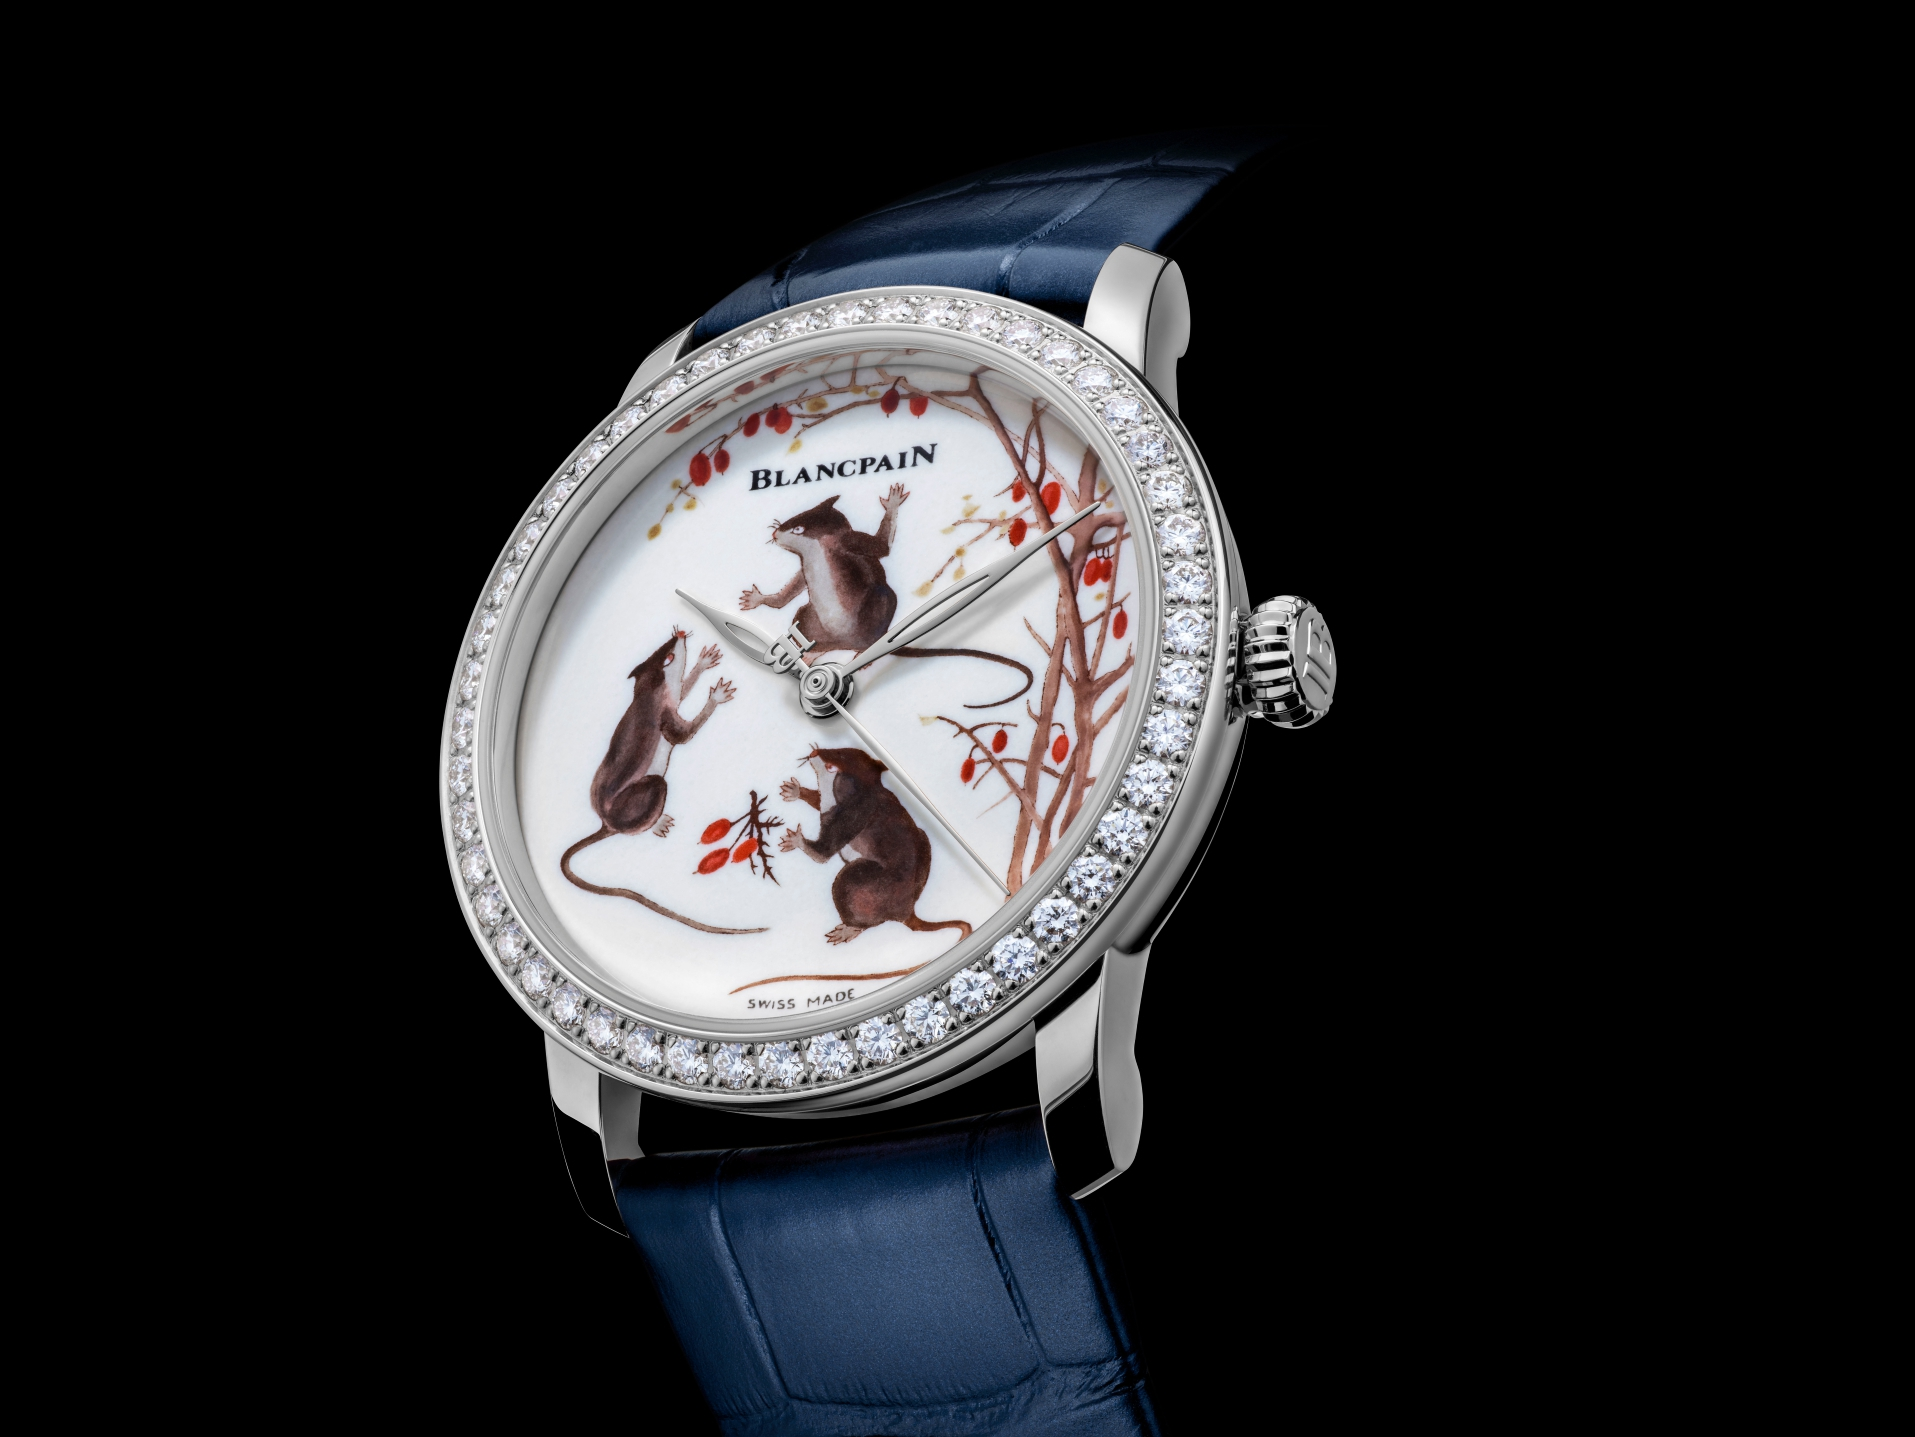 Blancpain celebrates the Year of the Rat with their first-ever porcelain dial